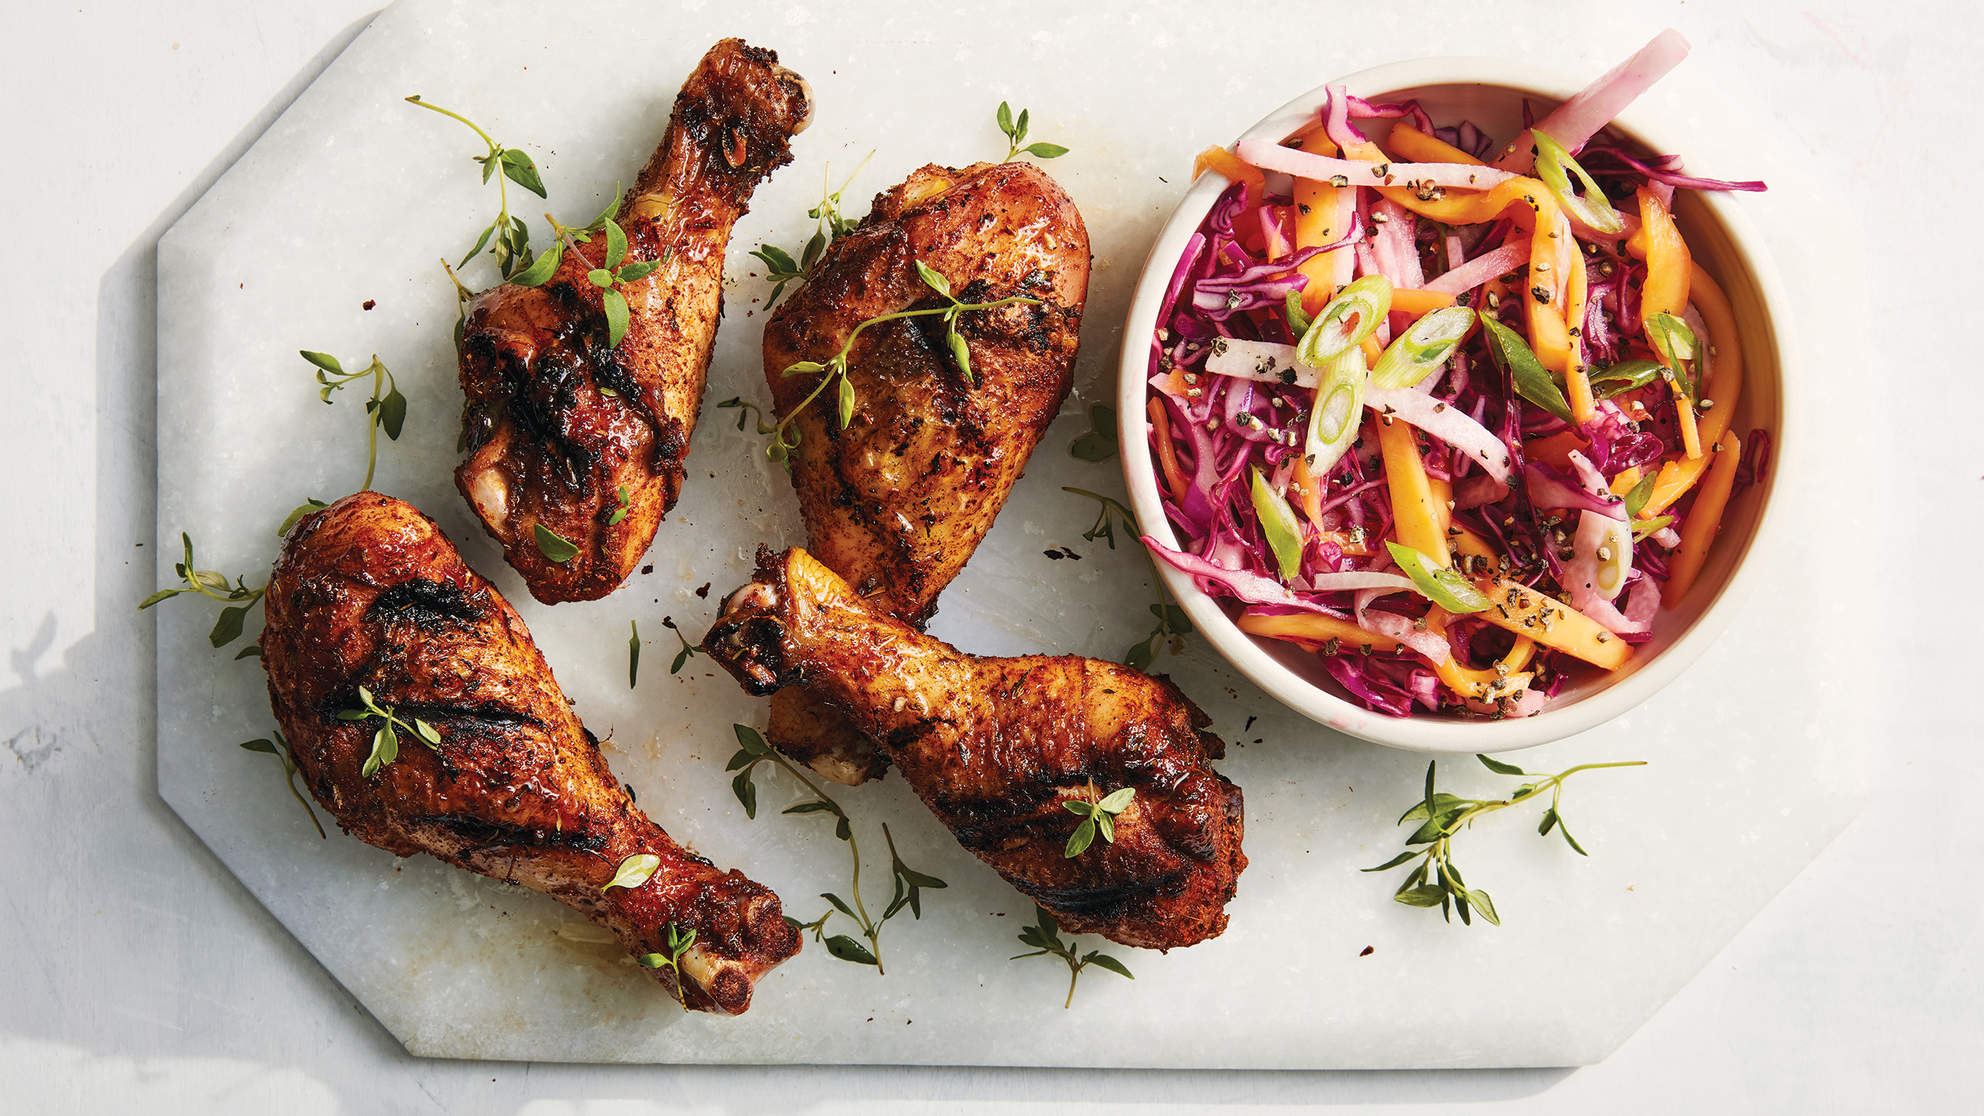 Jerk Chicken Drumsticks with Mango Jicama Sauce